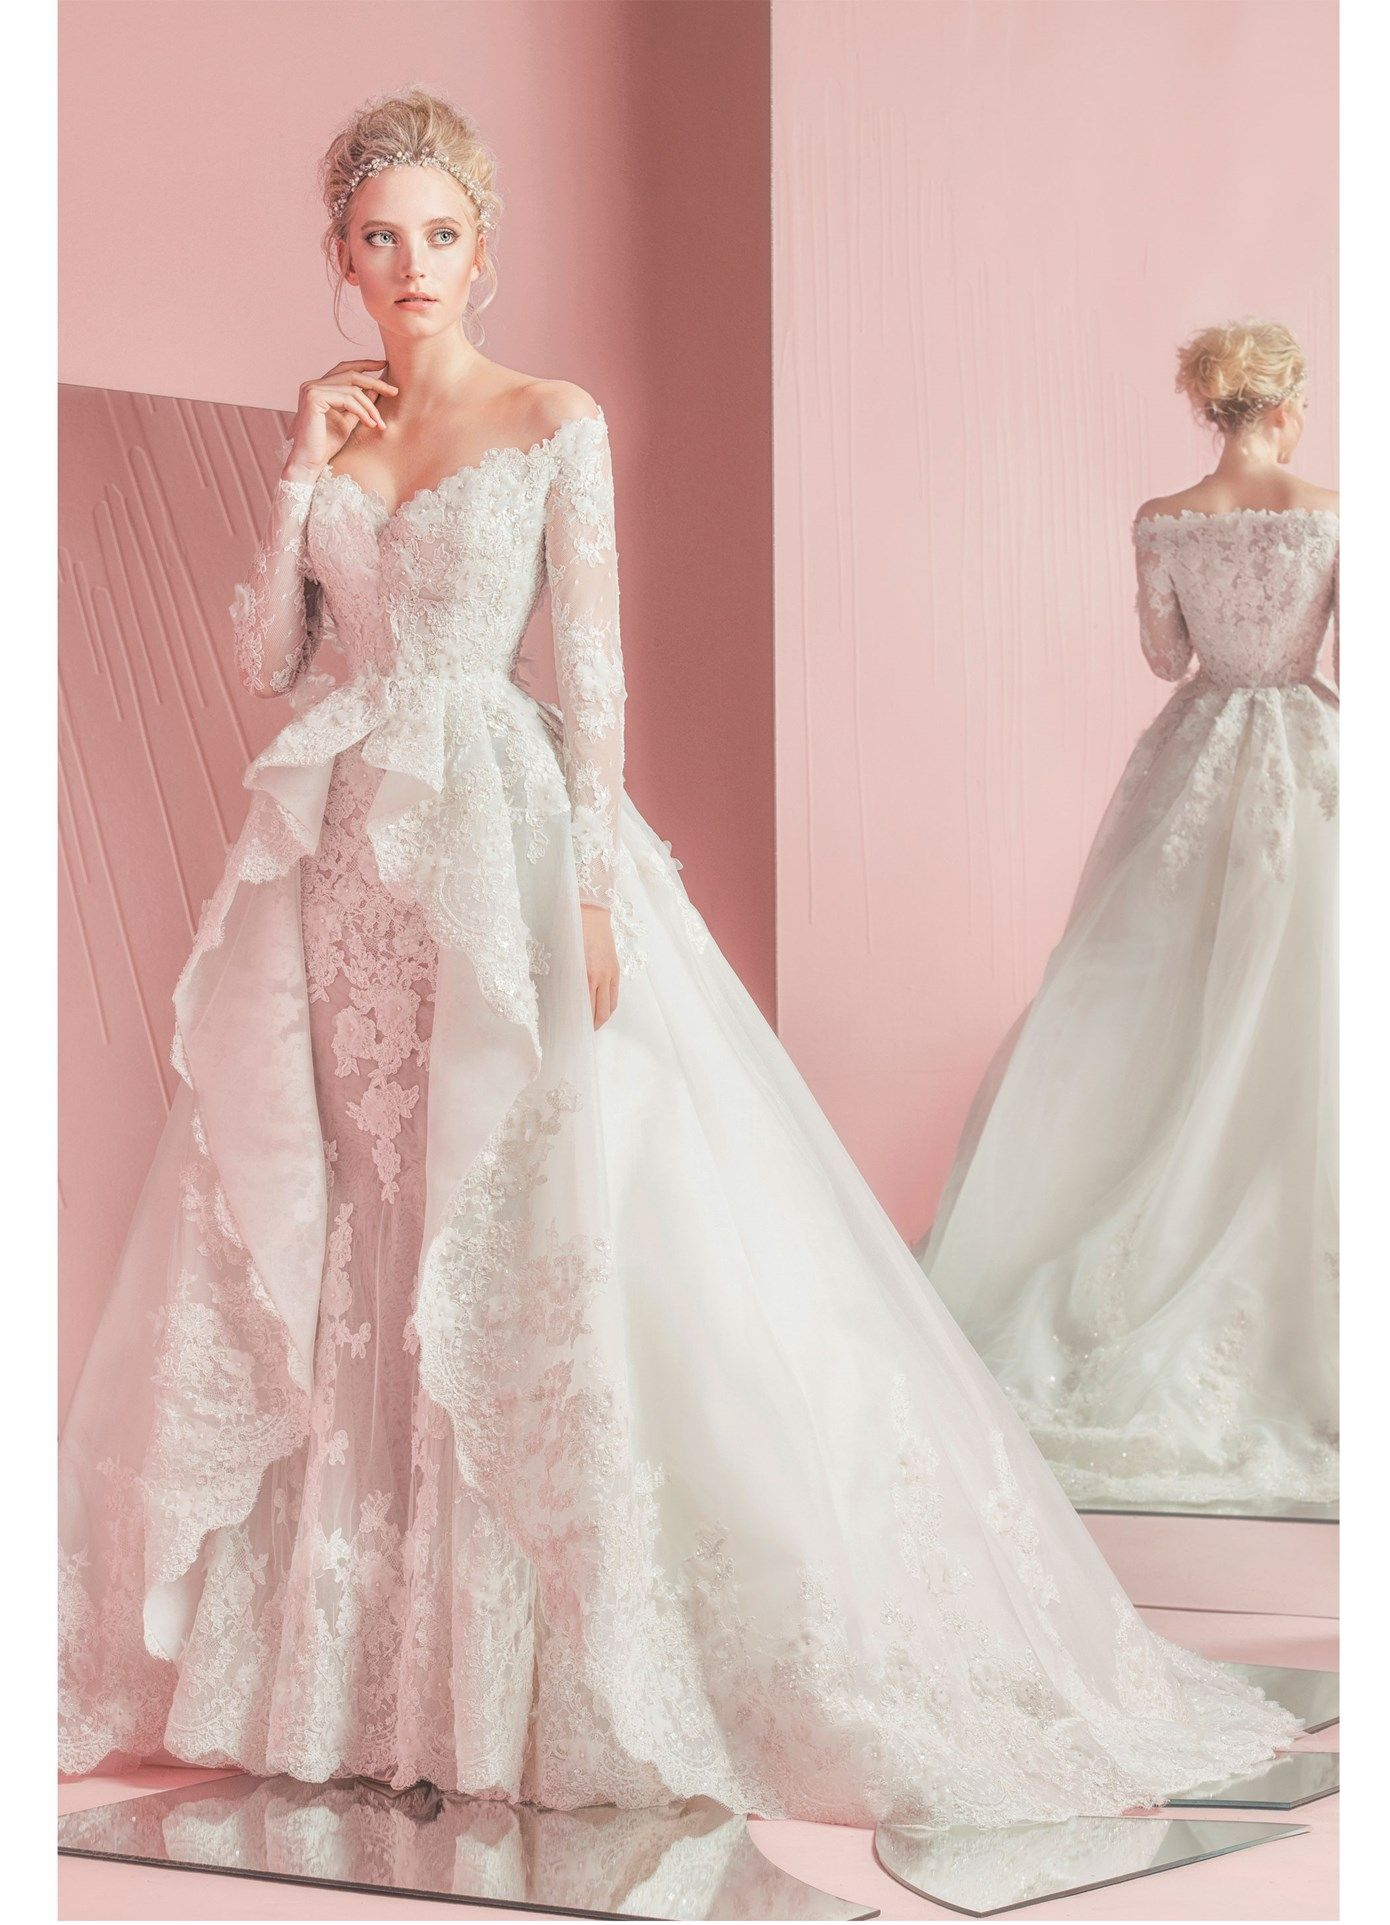 Naughty Gal Shoes : Wedding dresses by PERINA | Bridal dresses ...